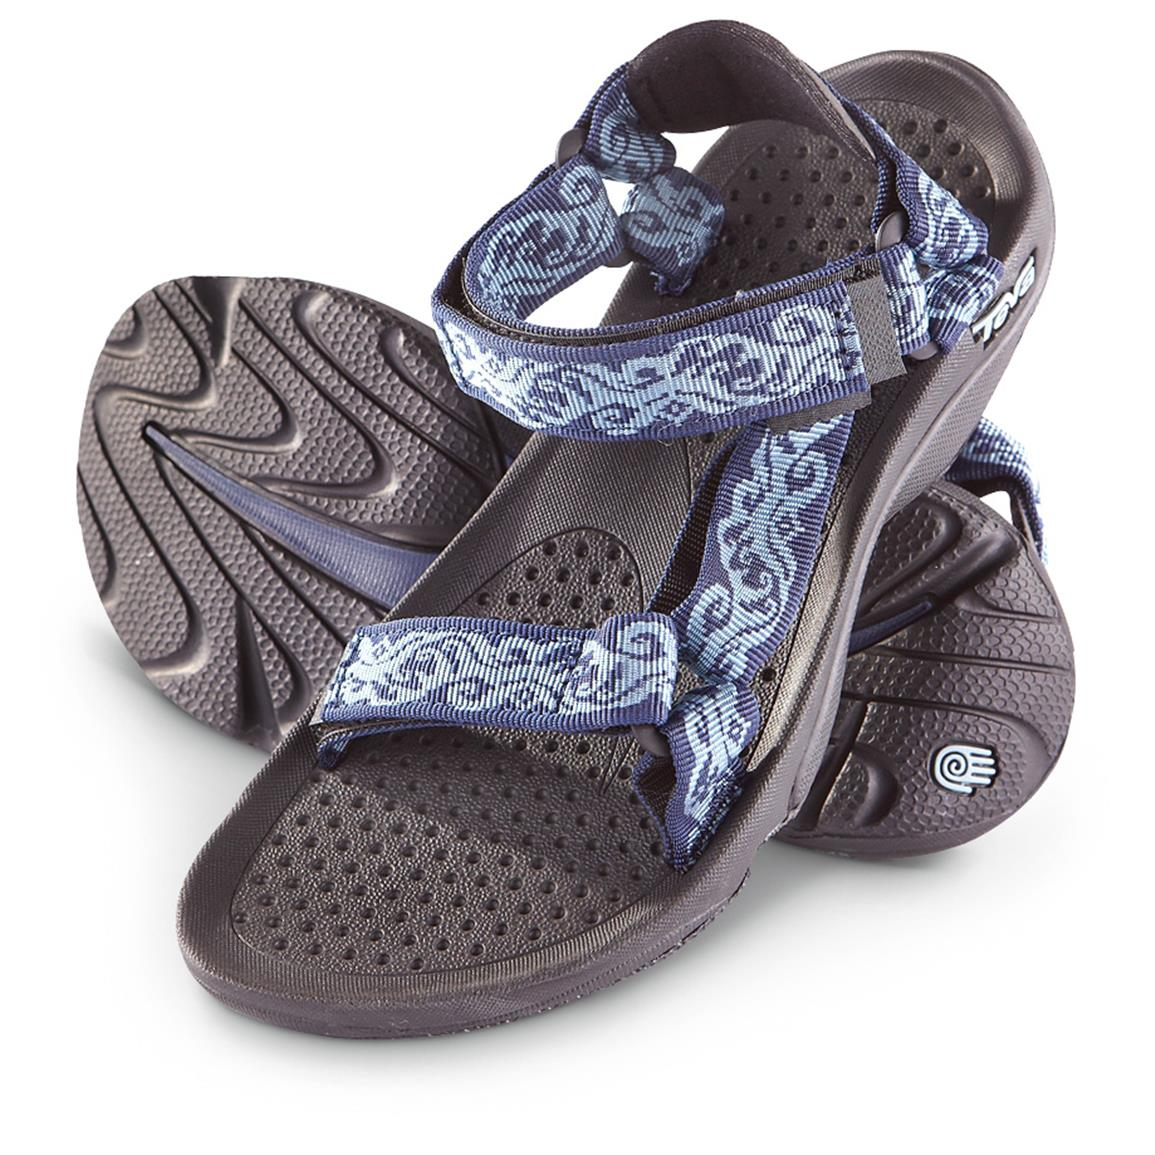 Teva Women's Hurricane 3 Sandals, Denim